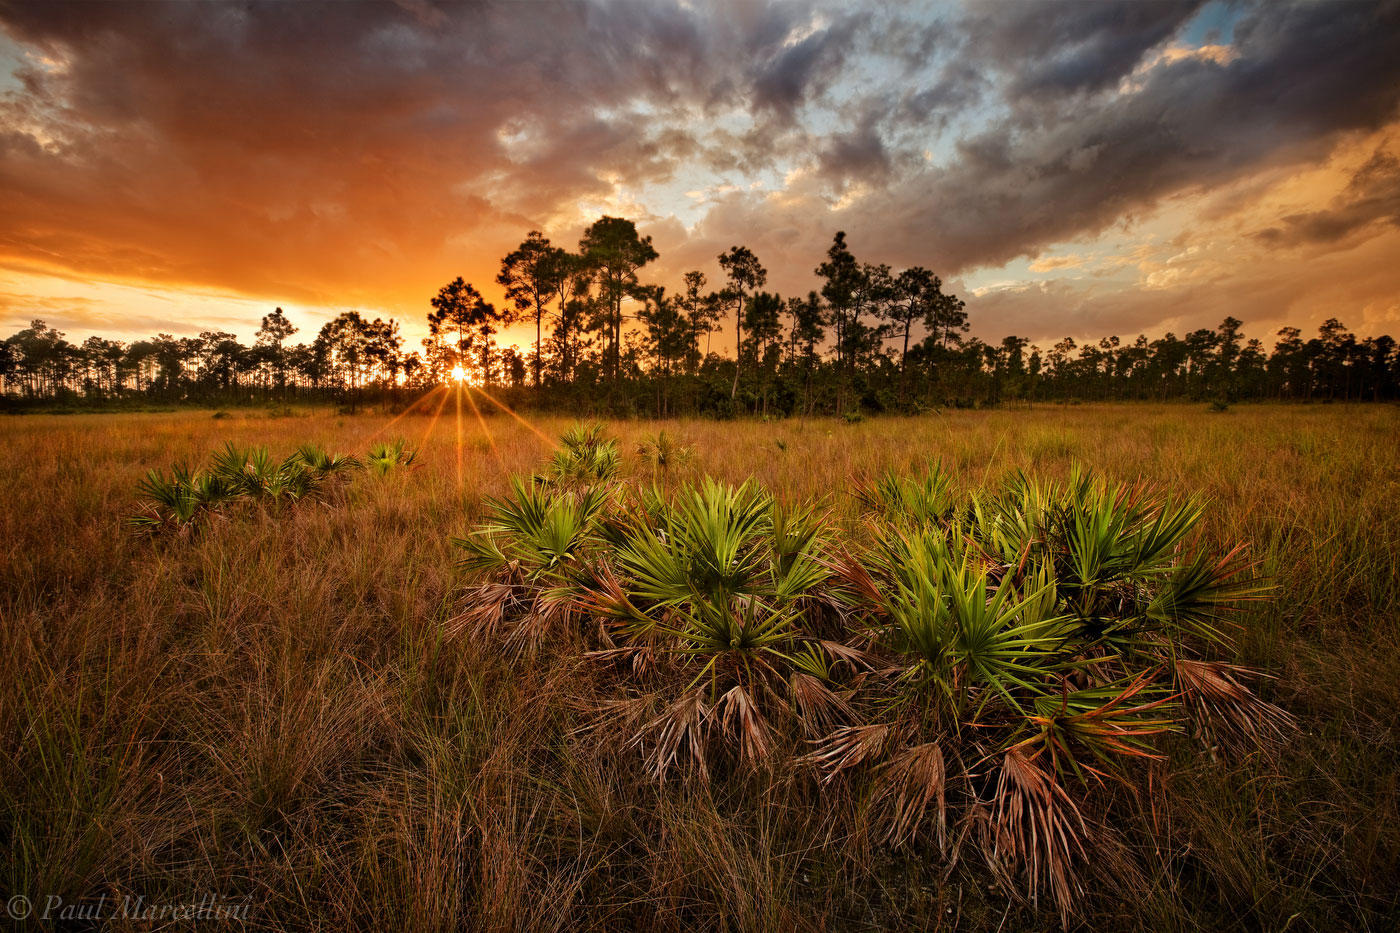 everglades, pinelands, sunset, storm, Florida, nature, photography, florida national parks, photo